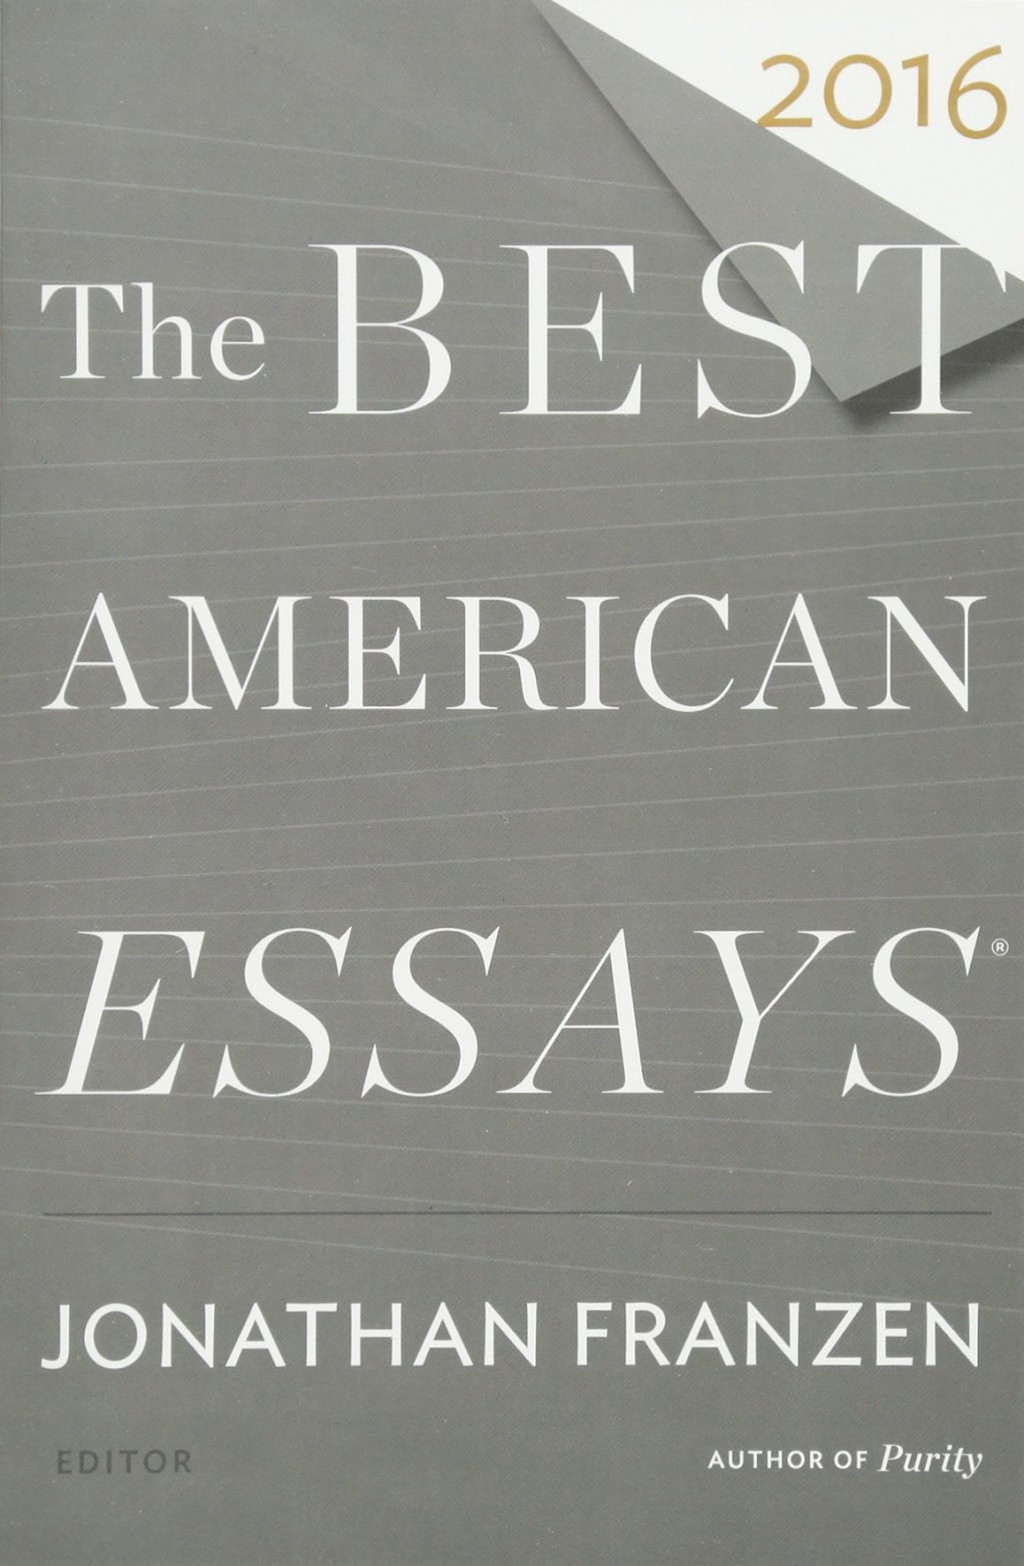 001 71a6bhsgsdl Essay Example Best American Essays Unique 2016 Notables The Free Pdf Large